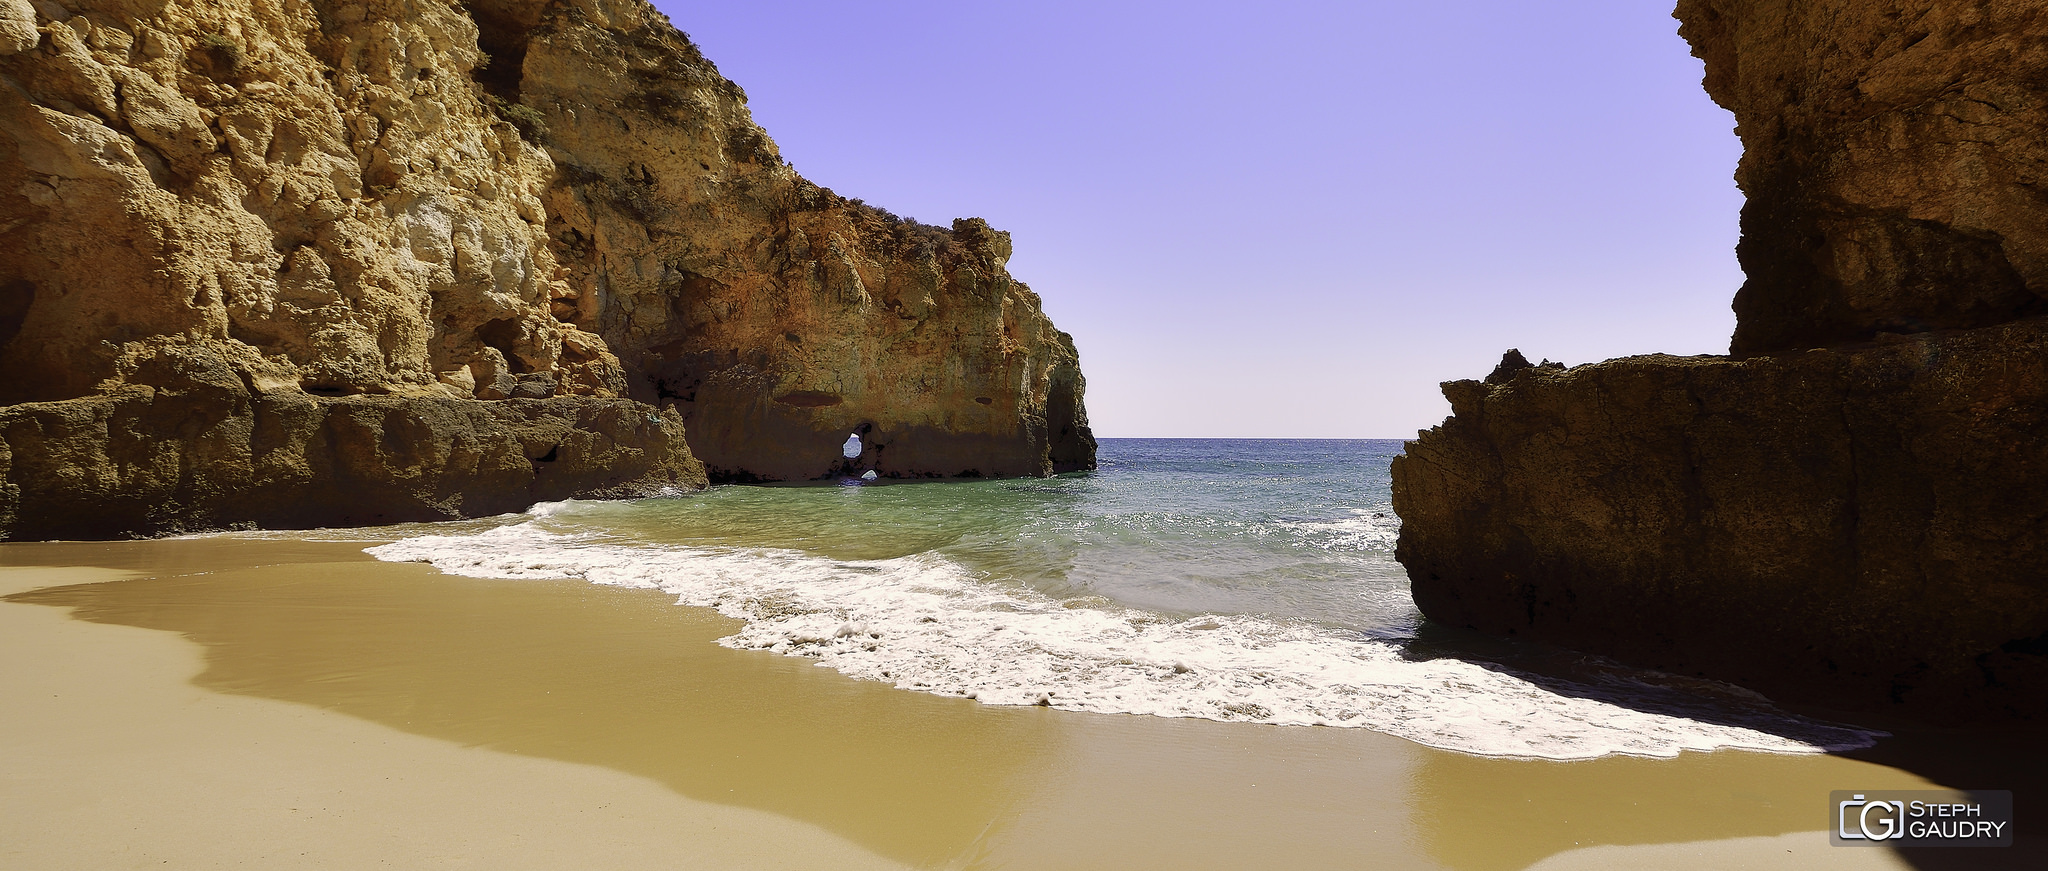 As praias de sonho do Algarve [Click to start slideshow]